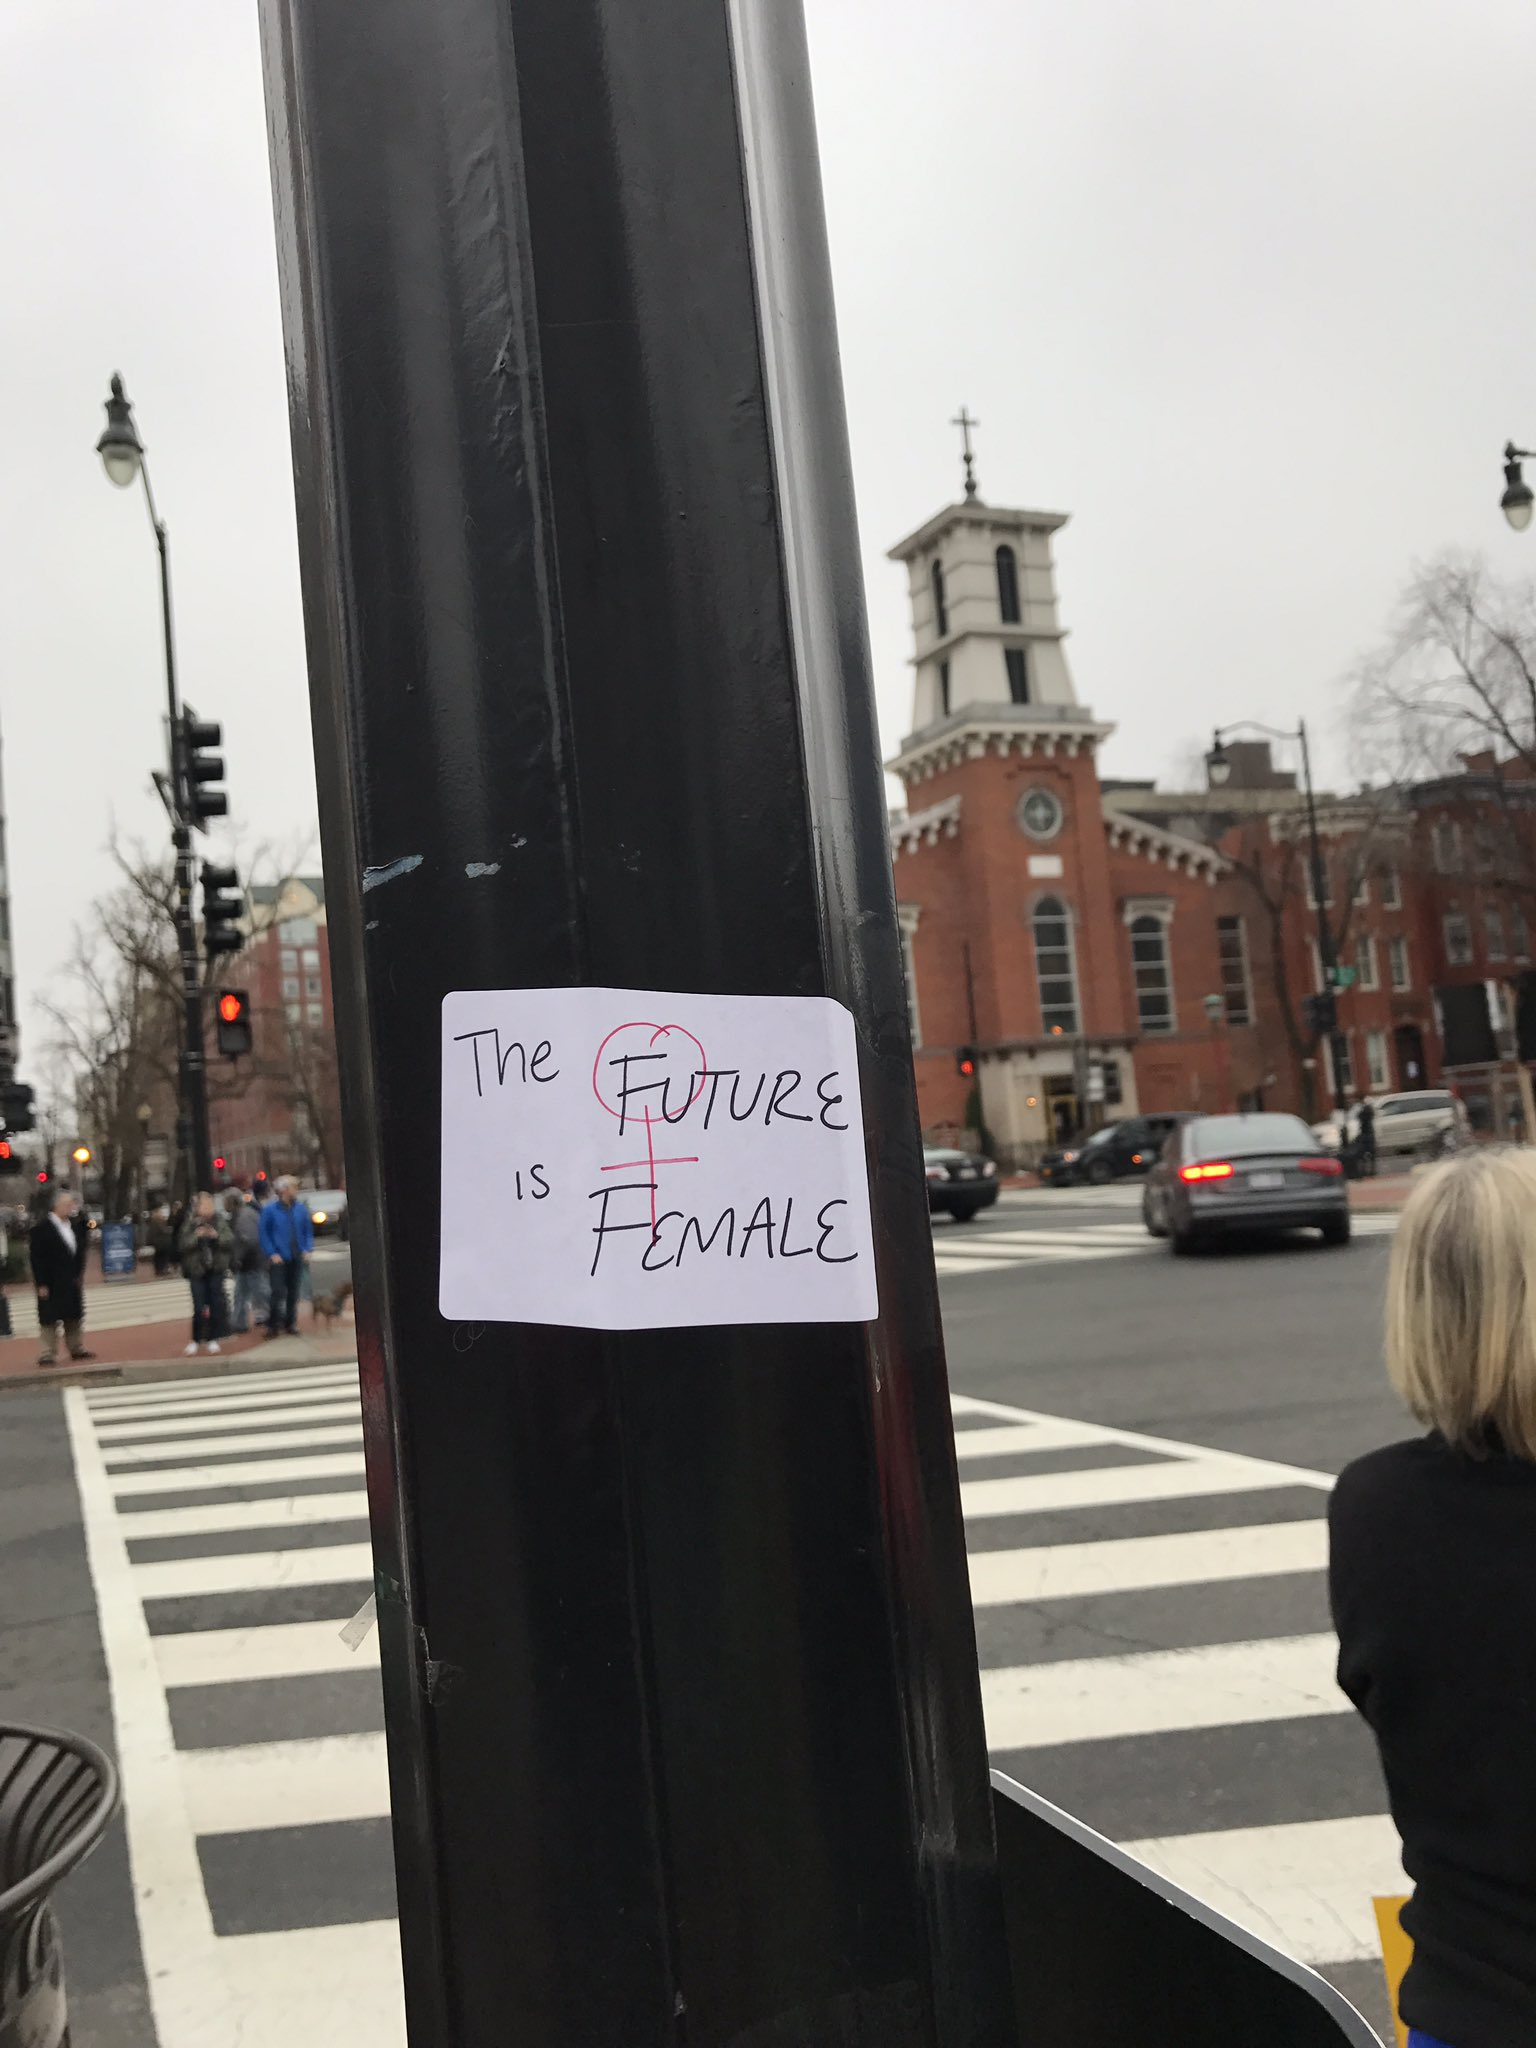 #WomensMarch My brilliant daughter is plastering messages across D.C. #TheFutureisFemale https://t.co/WEo3kNxqR5